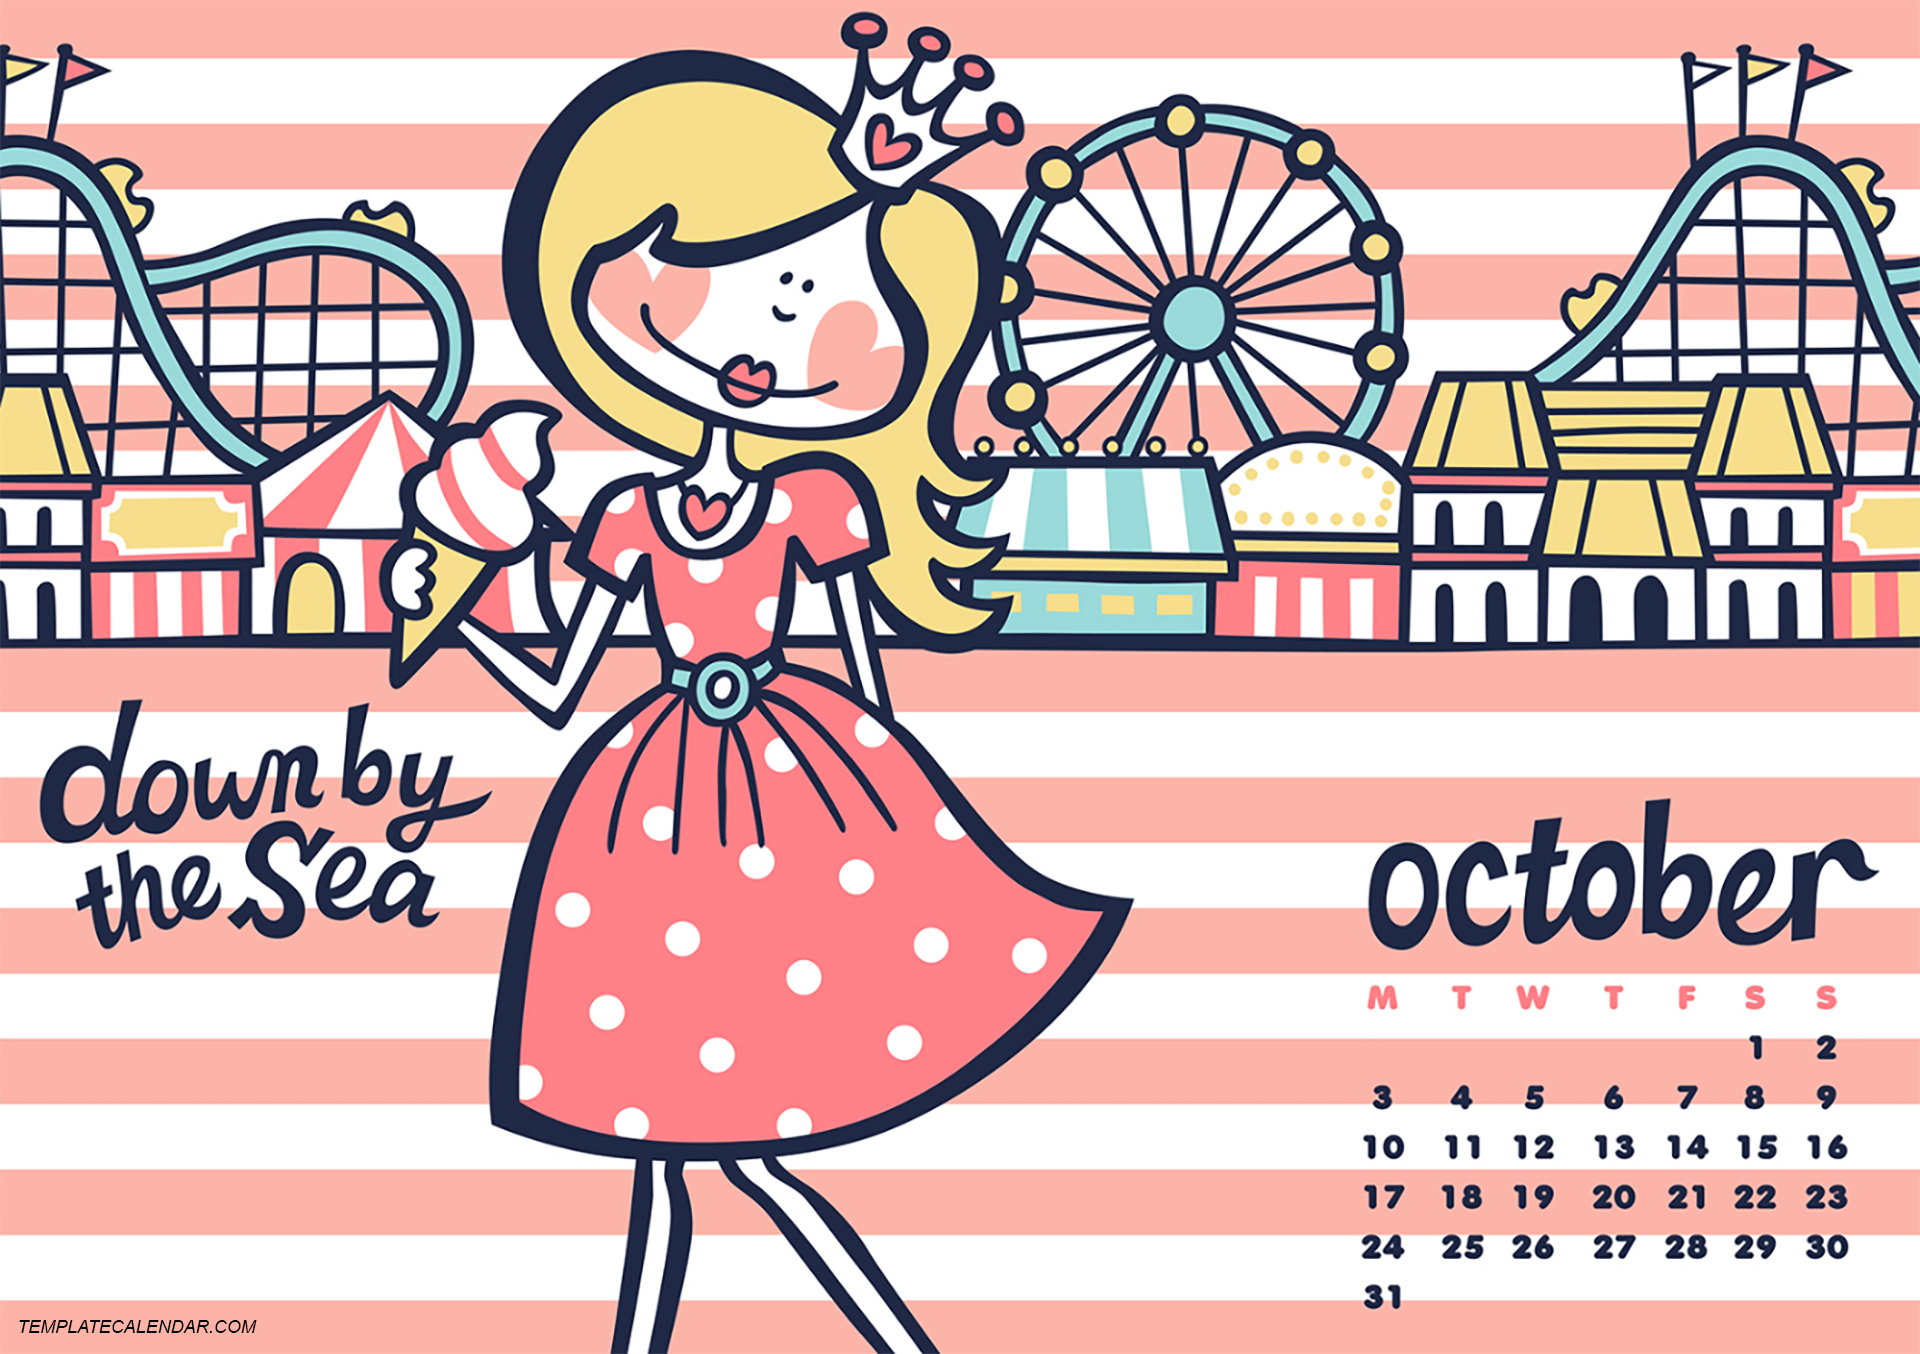 Cute october 2016 clipart image royalty free library October 2016 Wallpaper With Calendar #Wallpaper #2016October image royalty free library